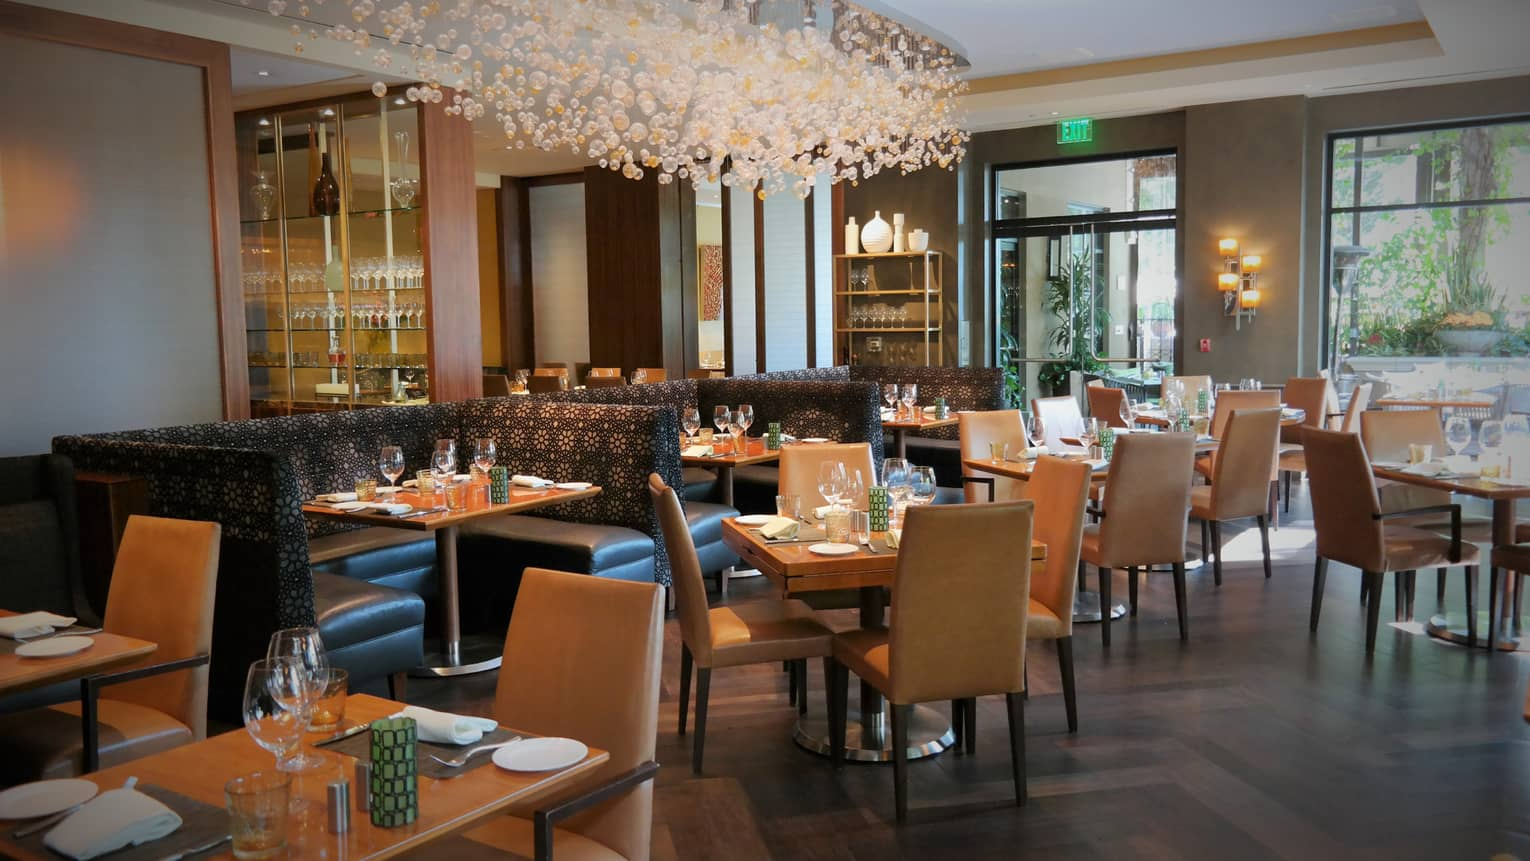 Culina Restaurant dining tables, chairs, booths under modern chandelier